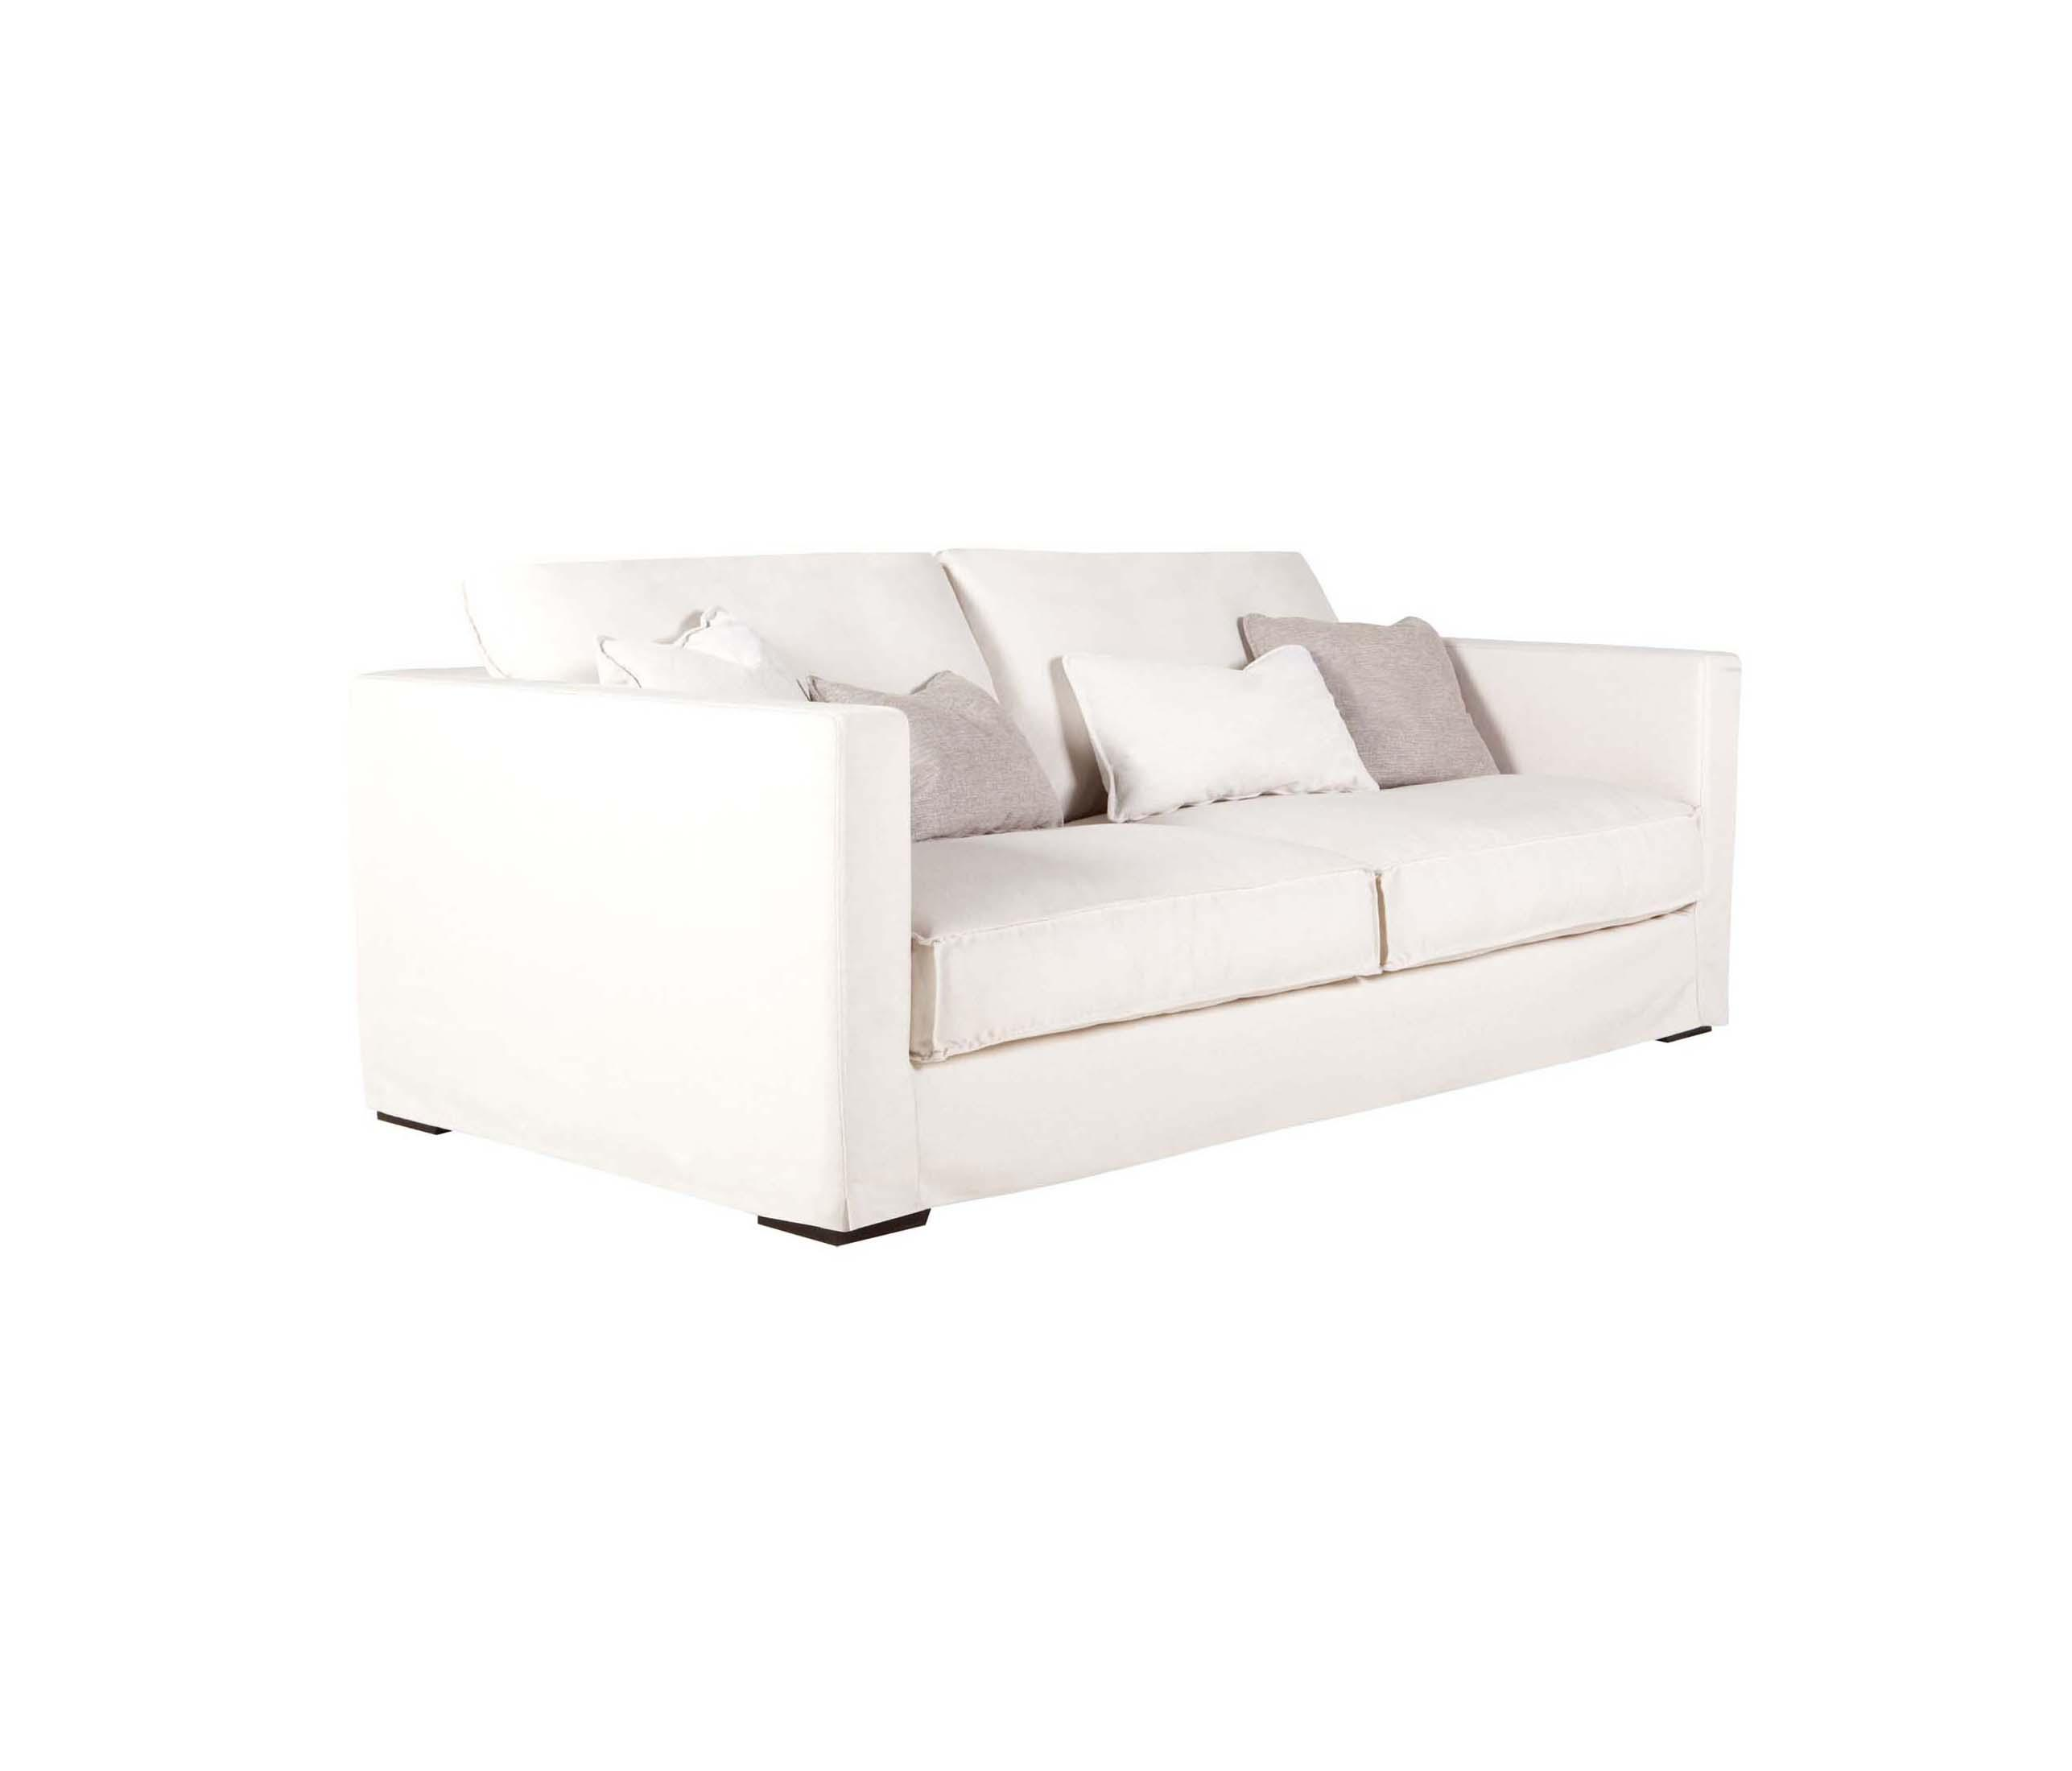 Fabulous Cloud Sofas From Sits Architonic Andrewgaddart Wooden Chair Designs For Living Room Andrewgaddartcom